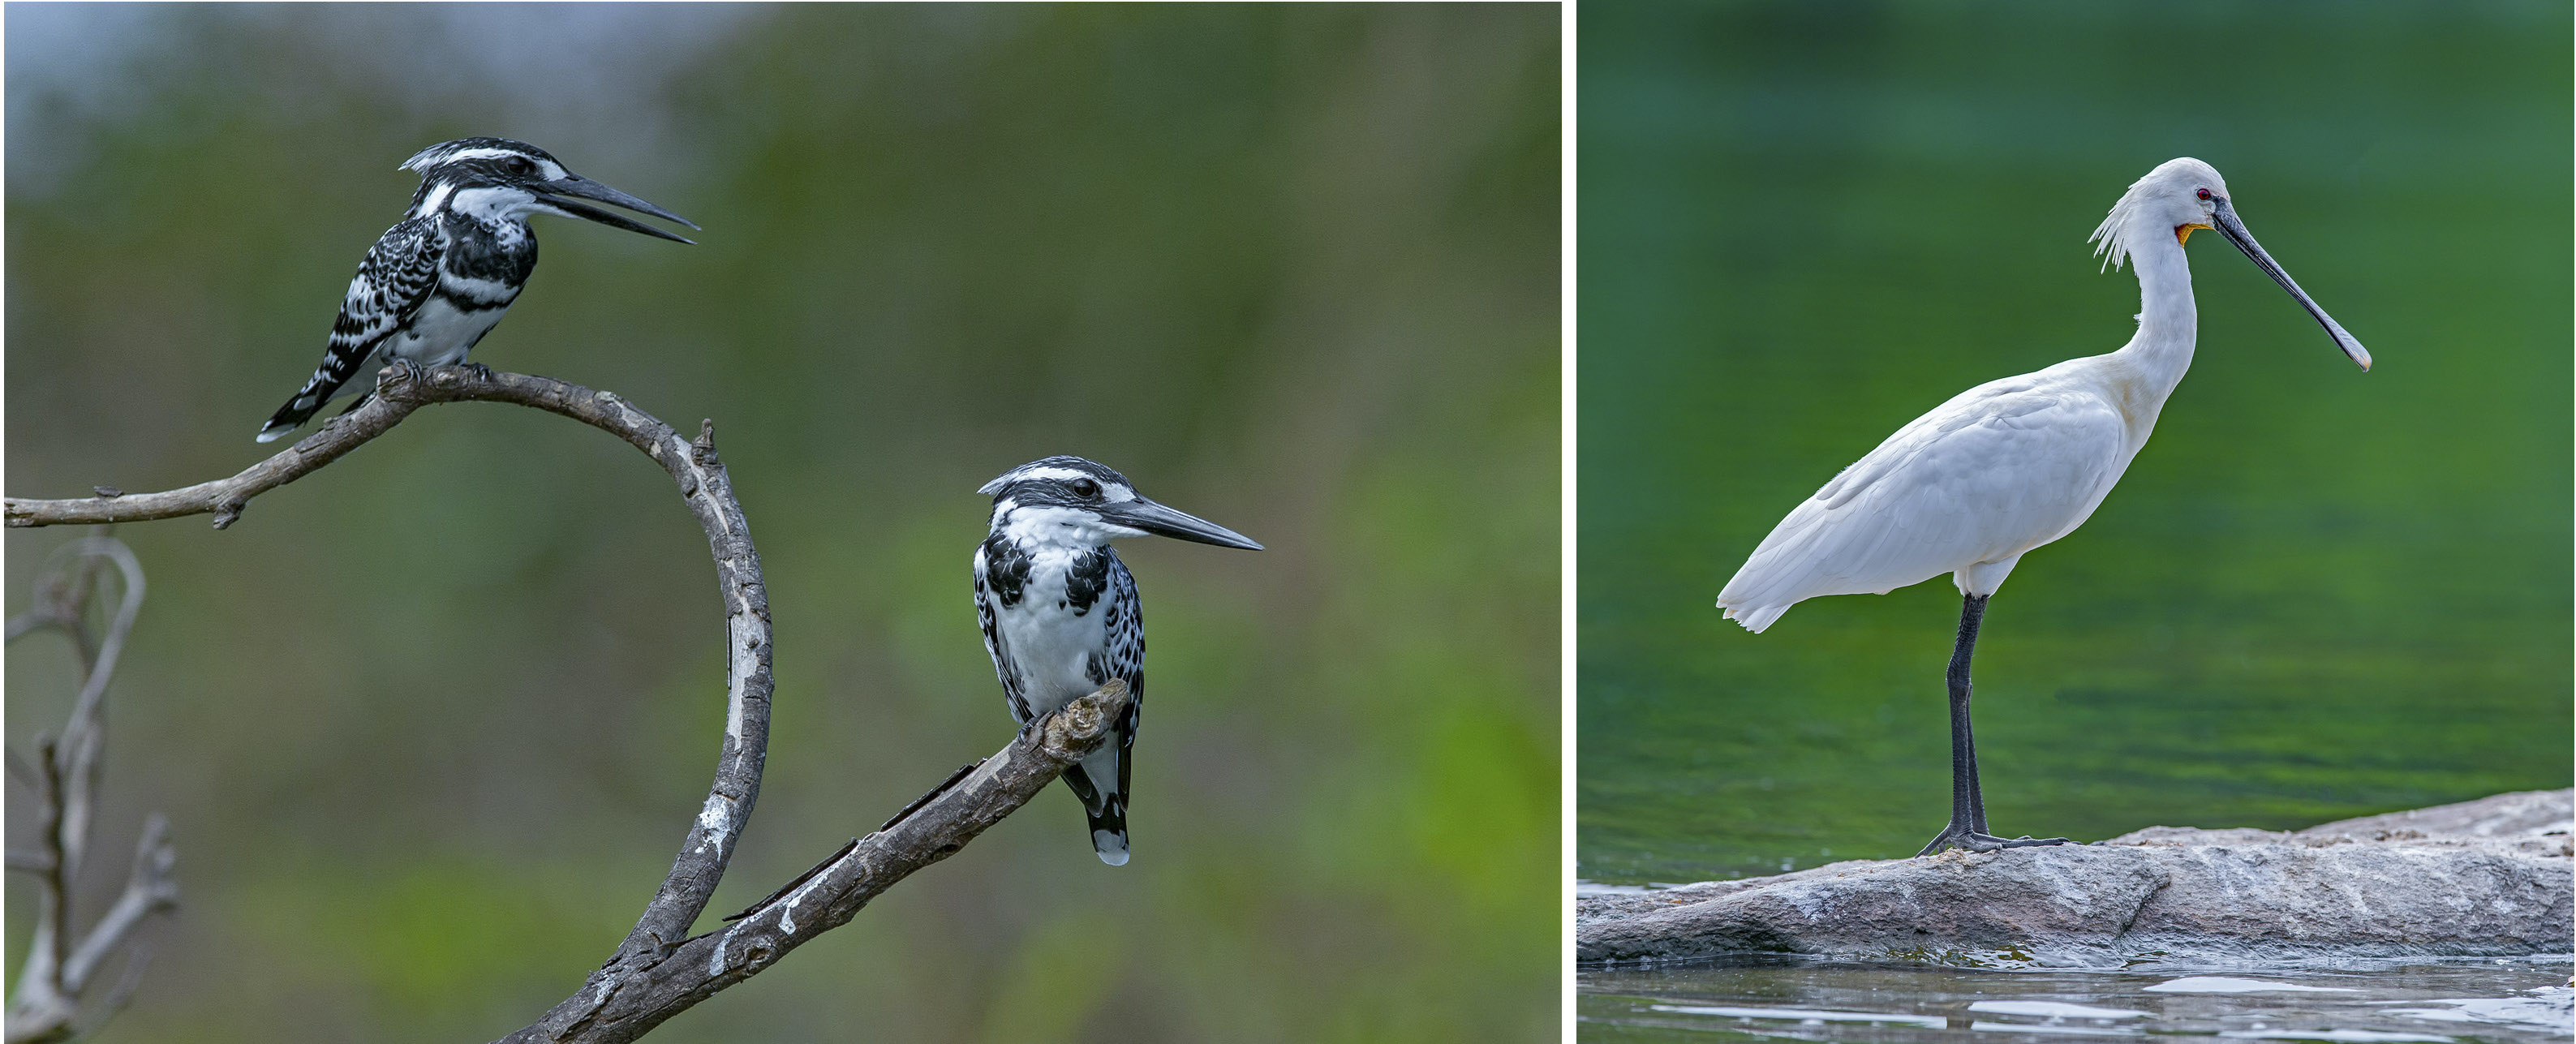 Pied kingfishers are often spotted perched along rivers and waterbodies. They form monogamous pairs and have elaborate courtships displays that include dancing, calling, and the male bringing the female treats to win her over. (Right) Long-legged spoonbills move their partially open, spoon-shaped bills from side-to-side while foraging for crustaceans, insects, and small fish in the water.